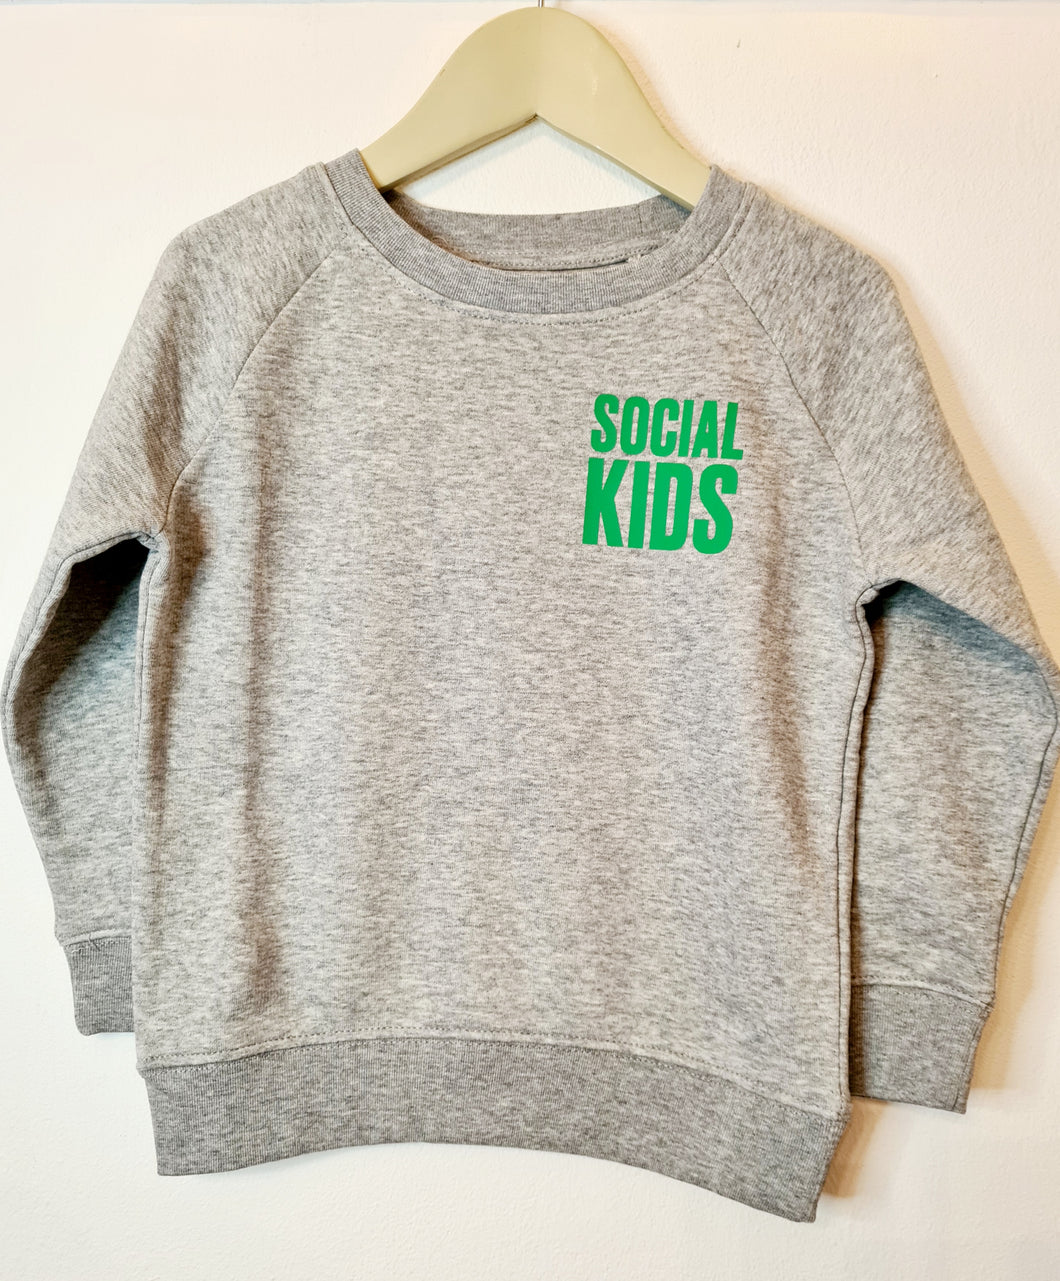 KIDS SOCIAL GREY & GREEN SWEATSHIRT